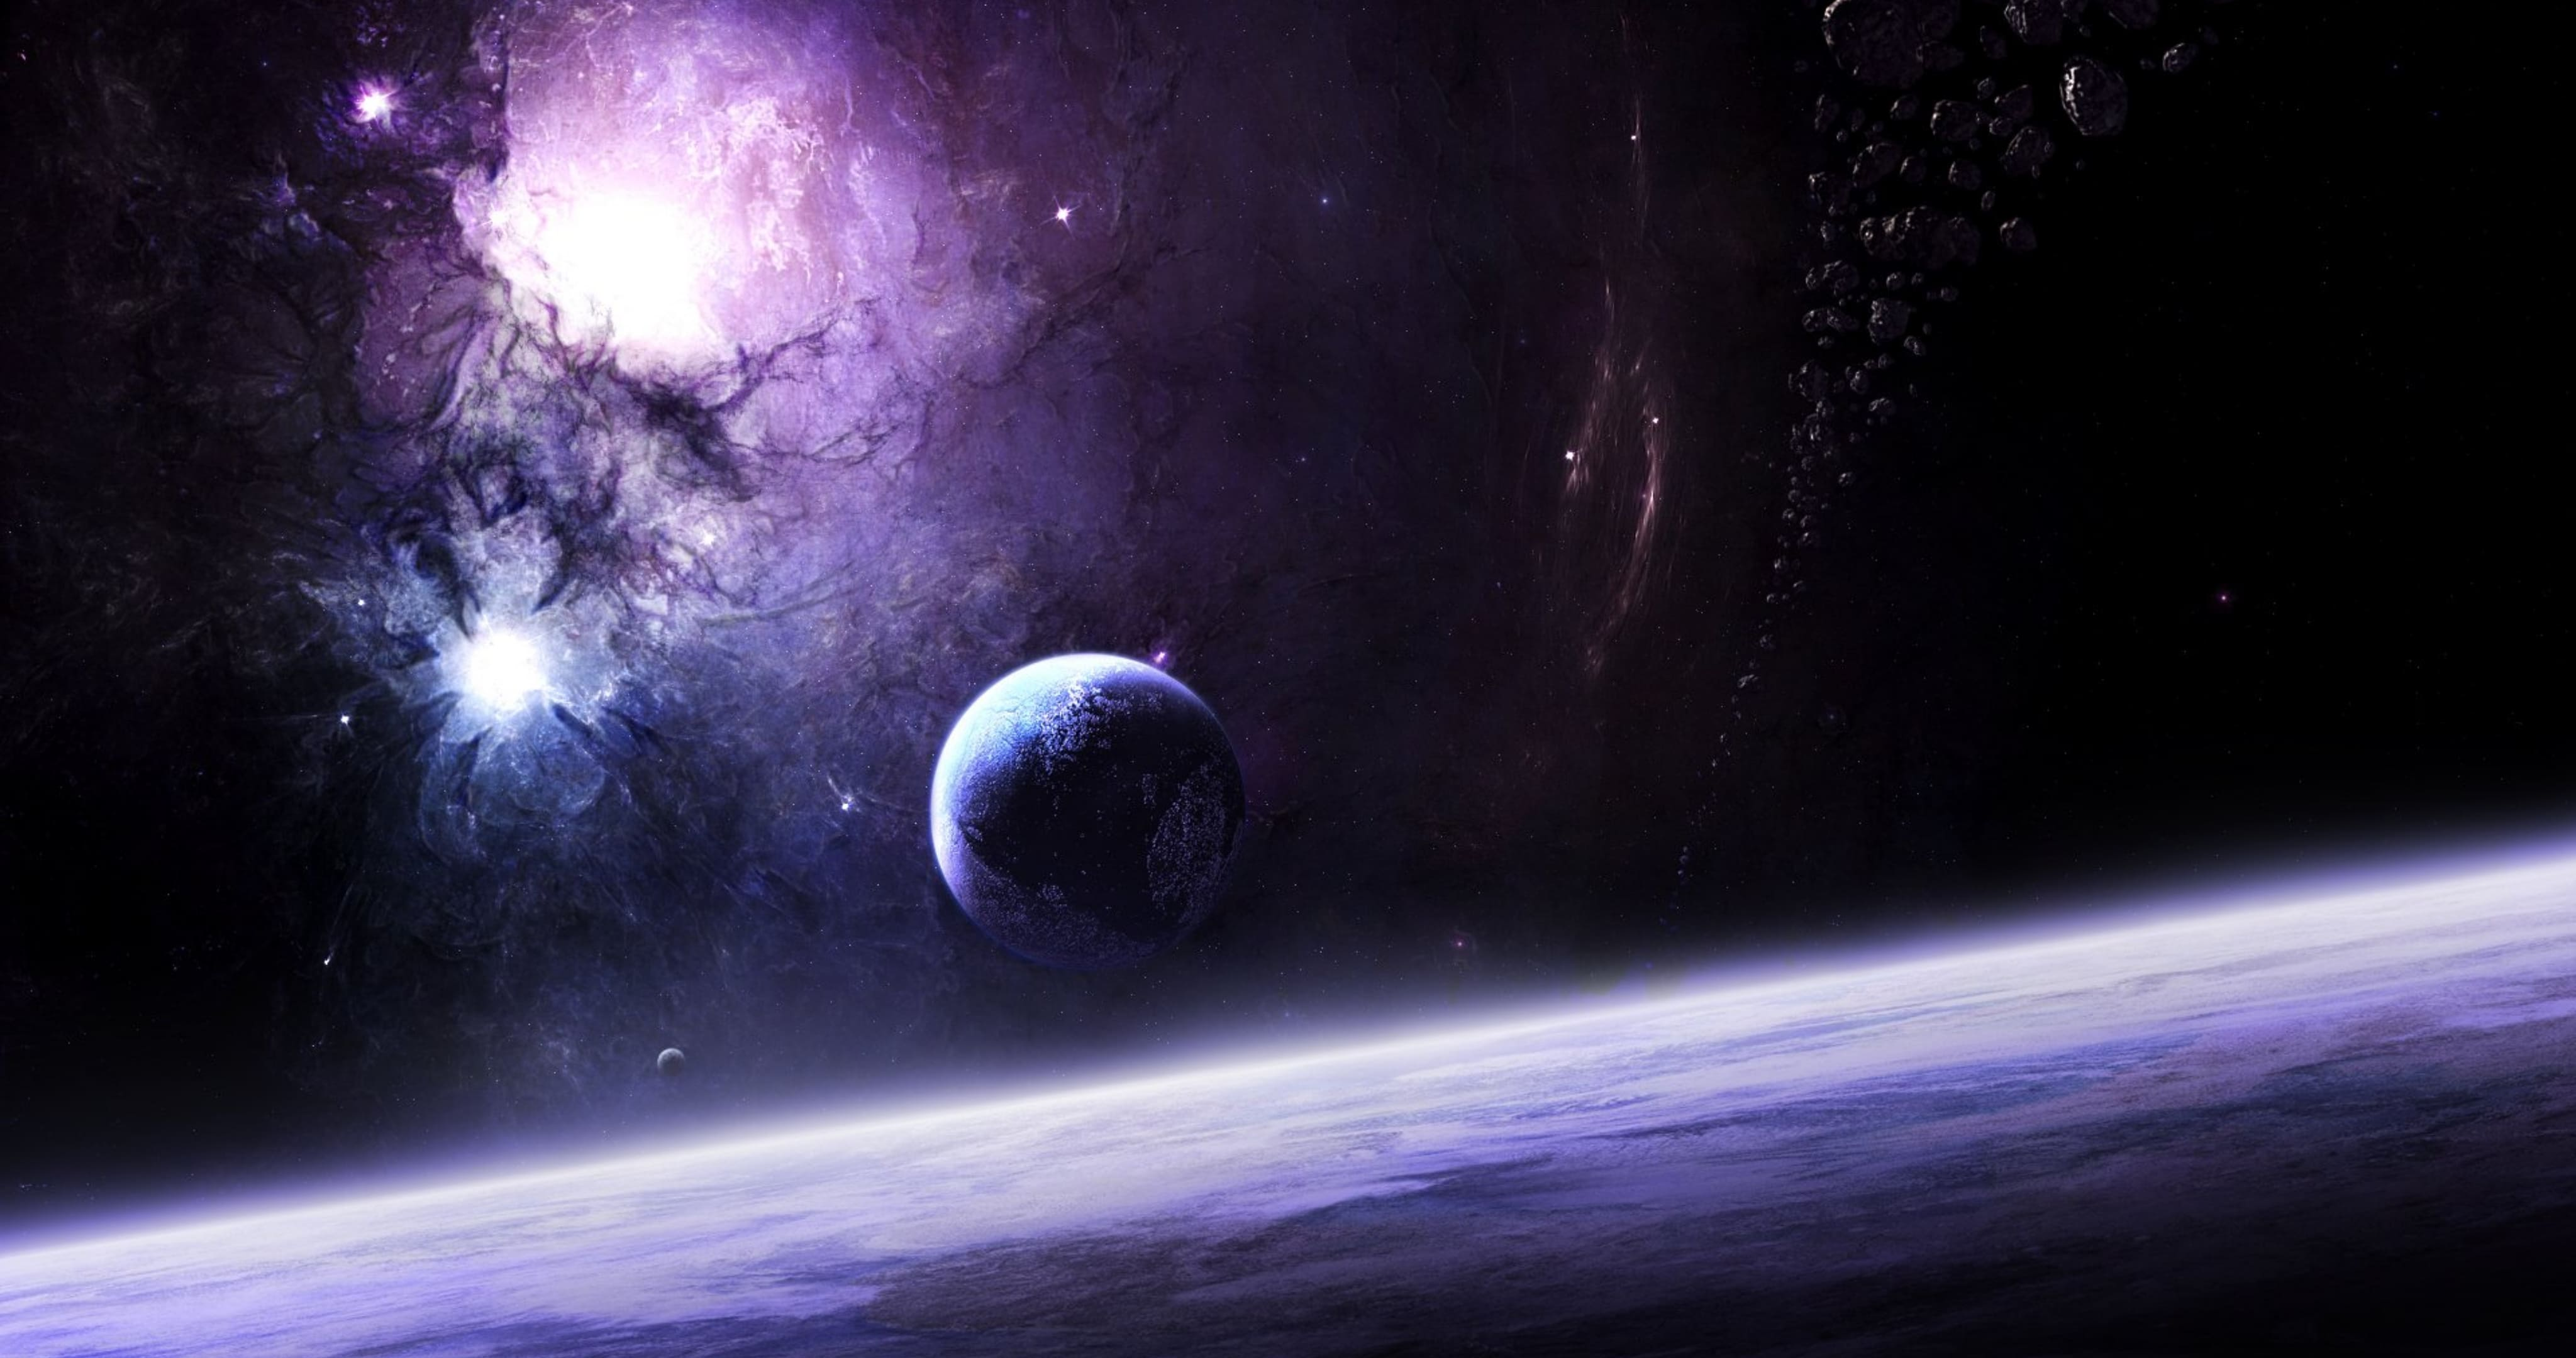 4k pictures of space